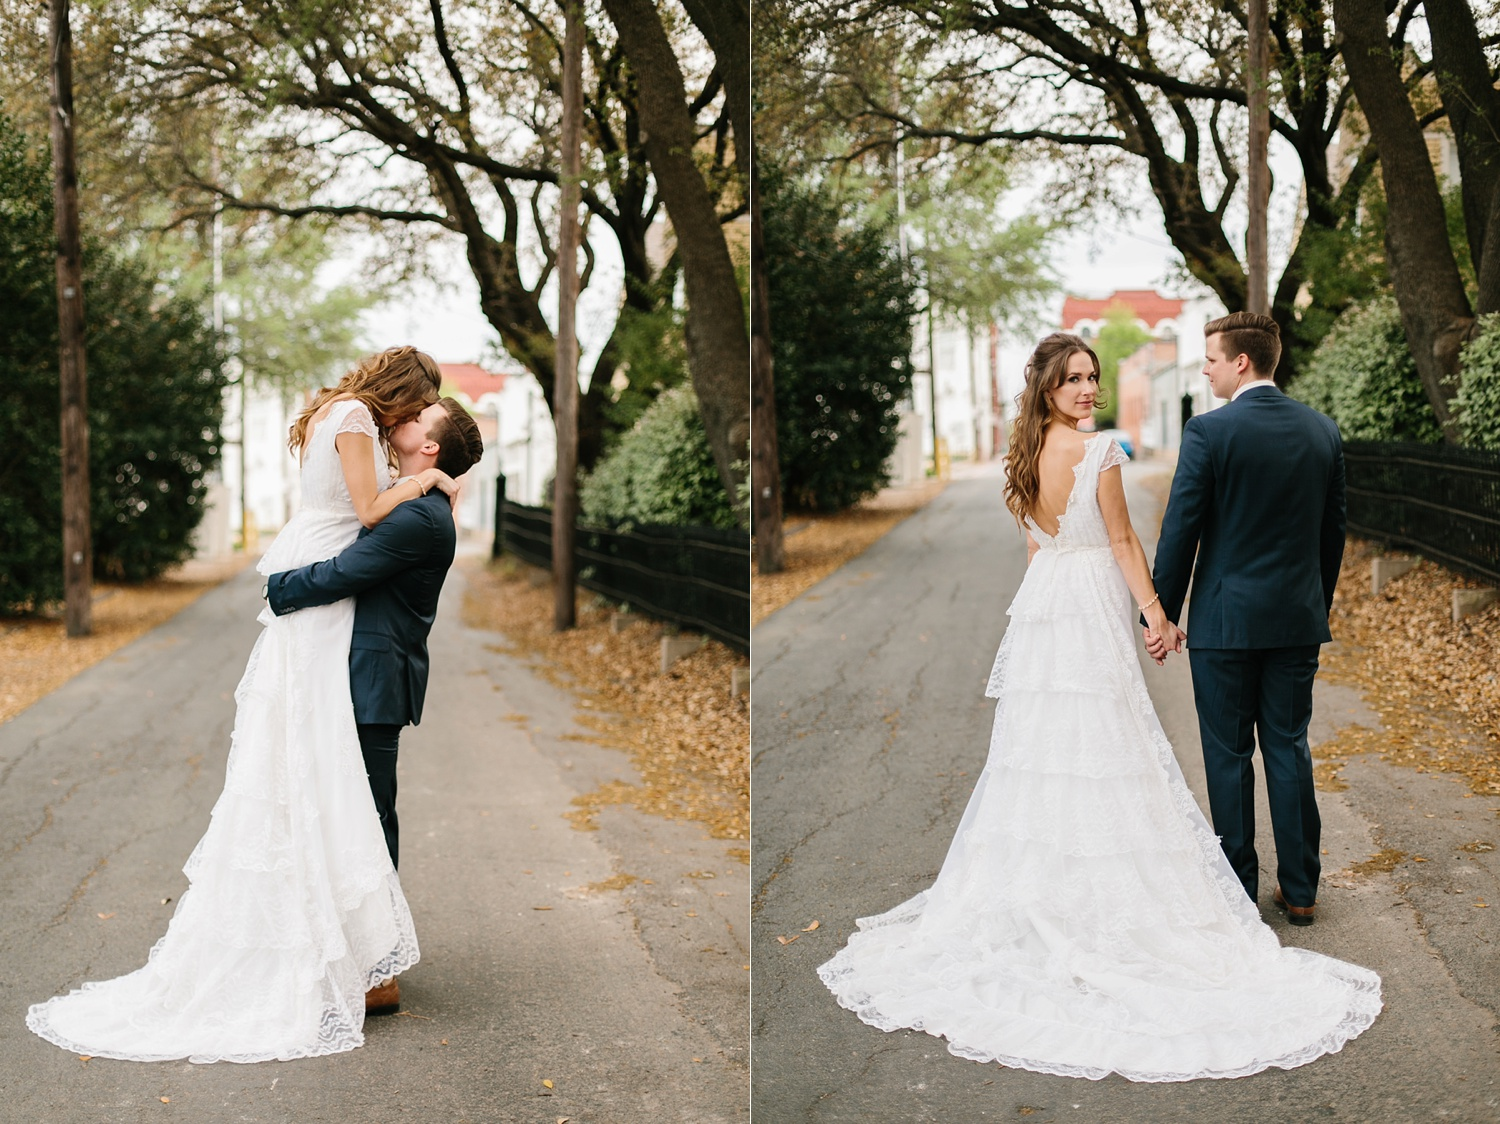 Amber + Daniel an intimate, simple, spring ceremony at Heard Craig Center and reception at Gather in McKinney, Texas by North Texas Wedding Photographer Rachel Meagan Photography 100